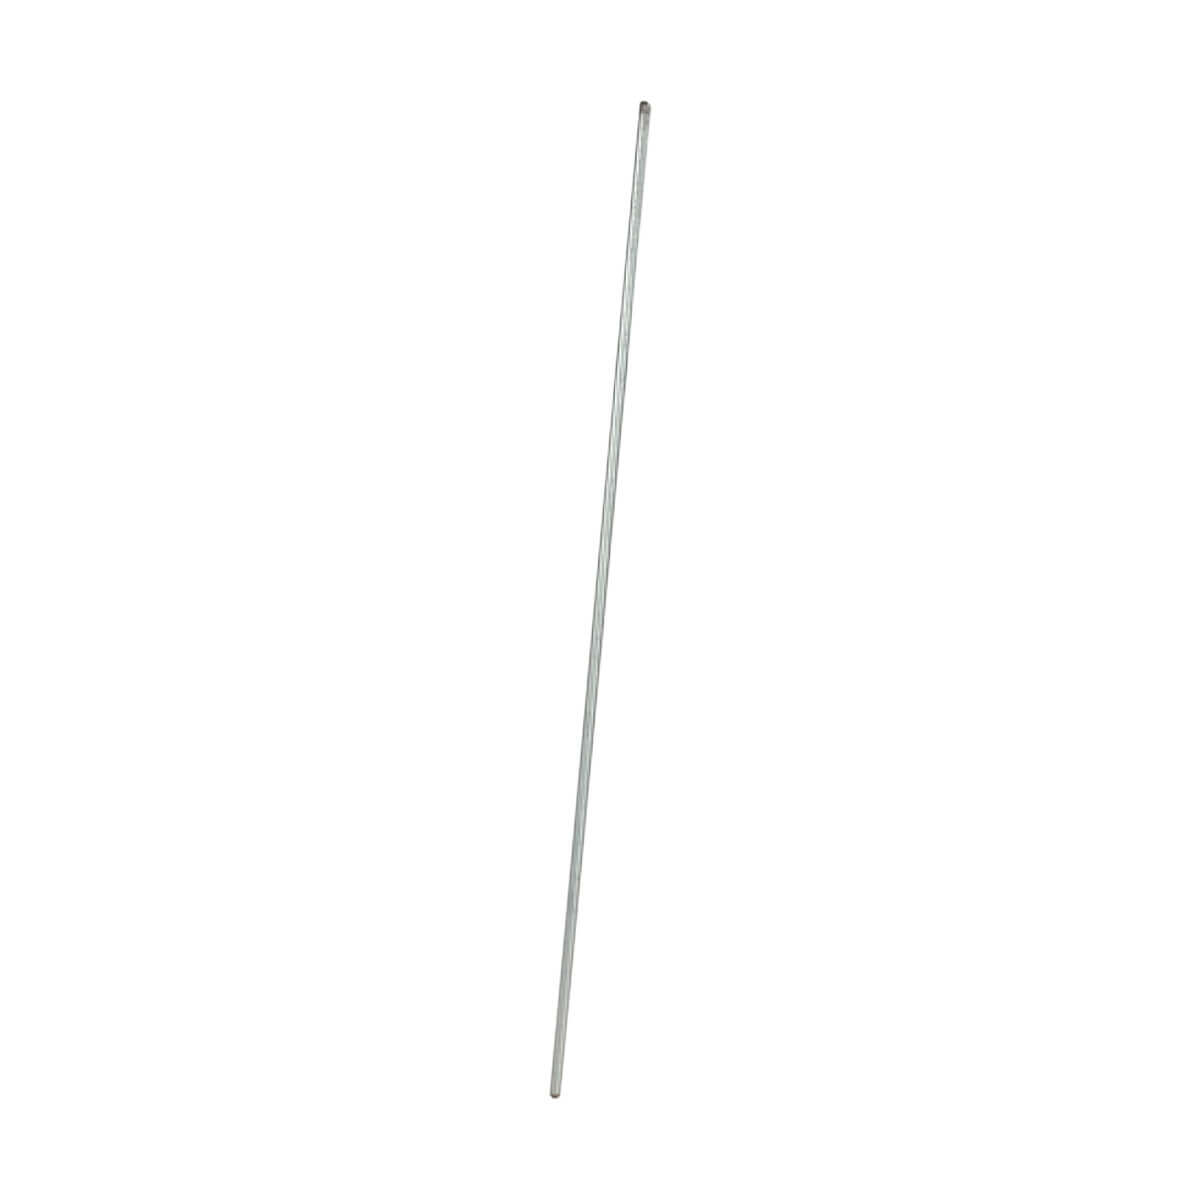 Gallagher Ground Stake - 6' (L)